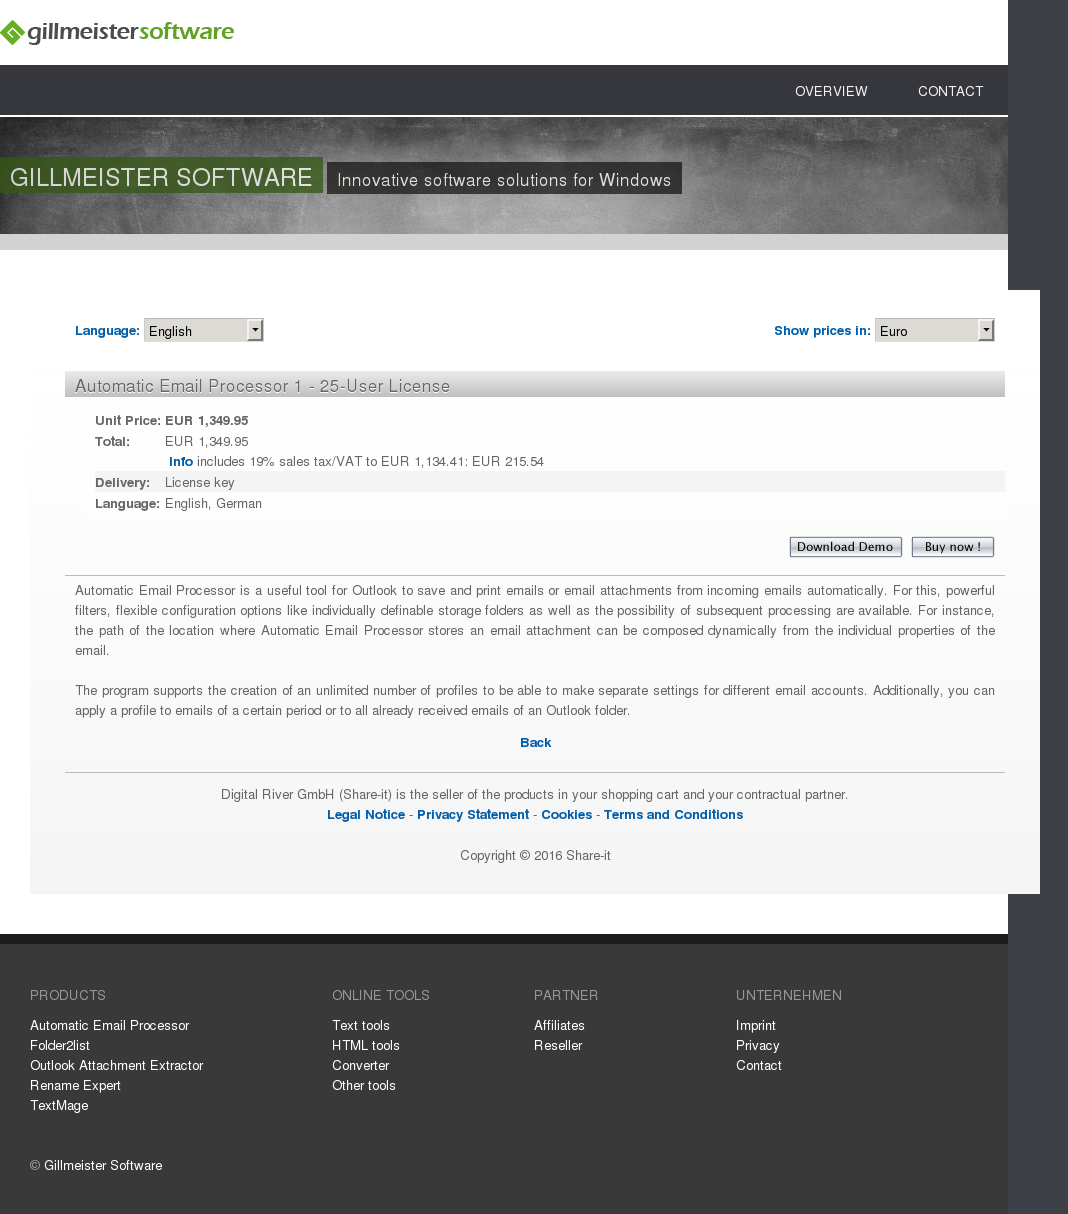 Automatic Email Processor 1 - 25-User License